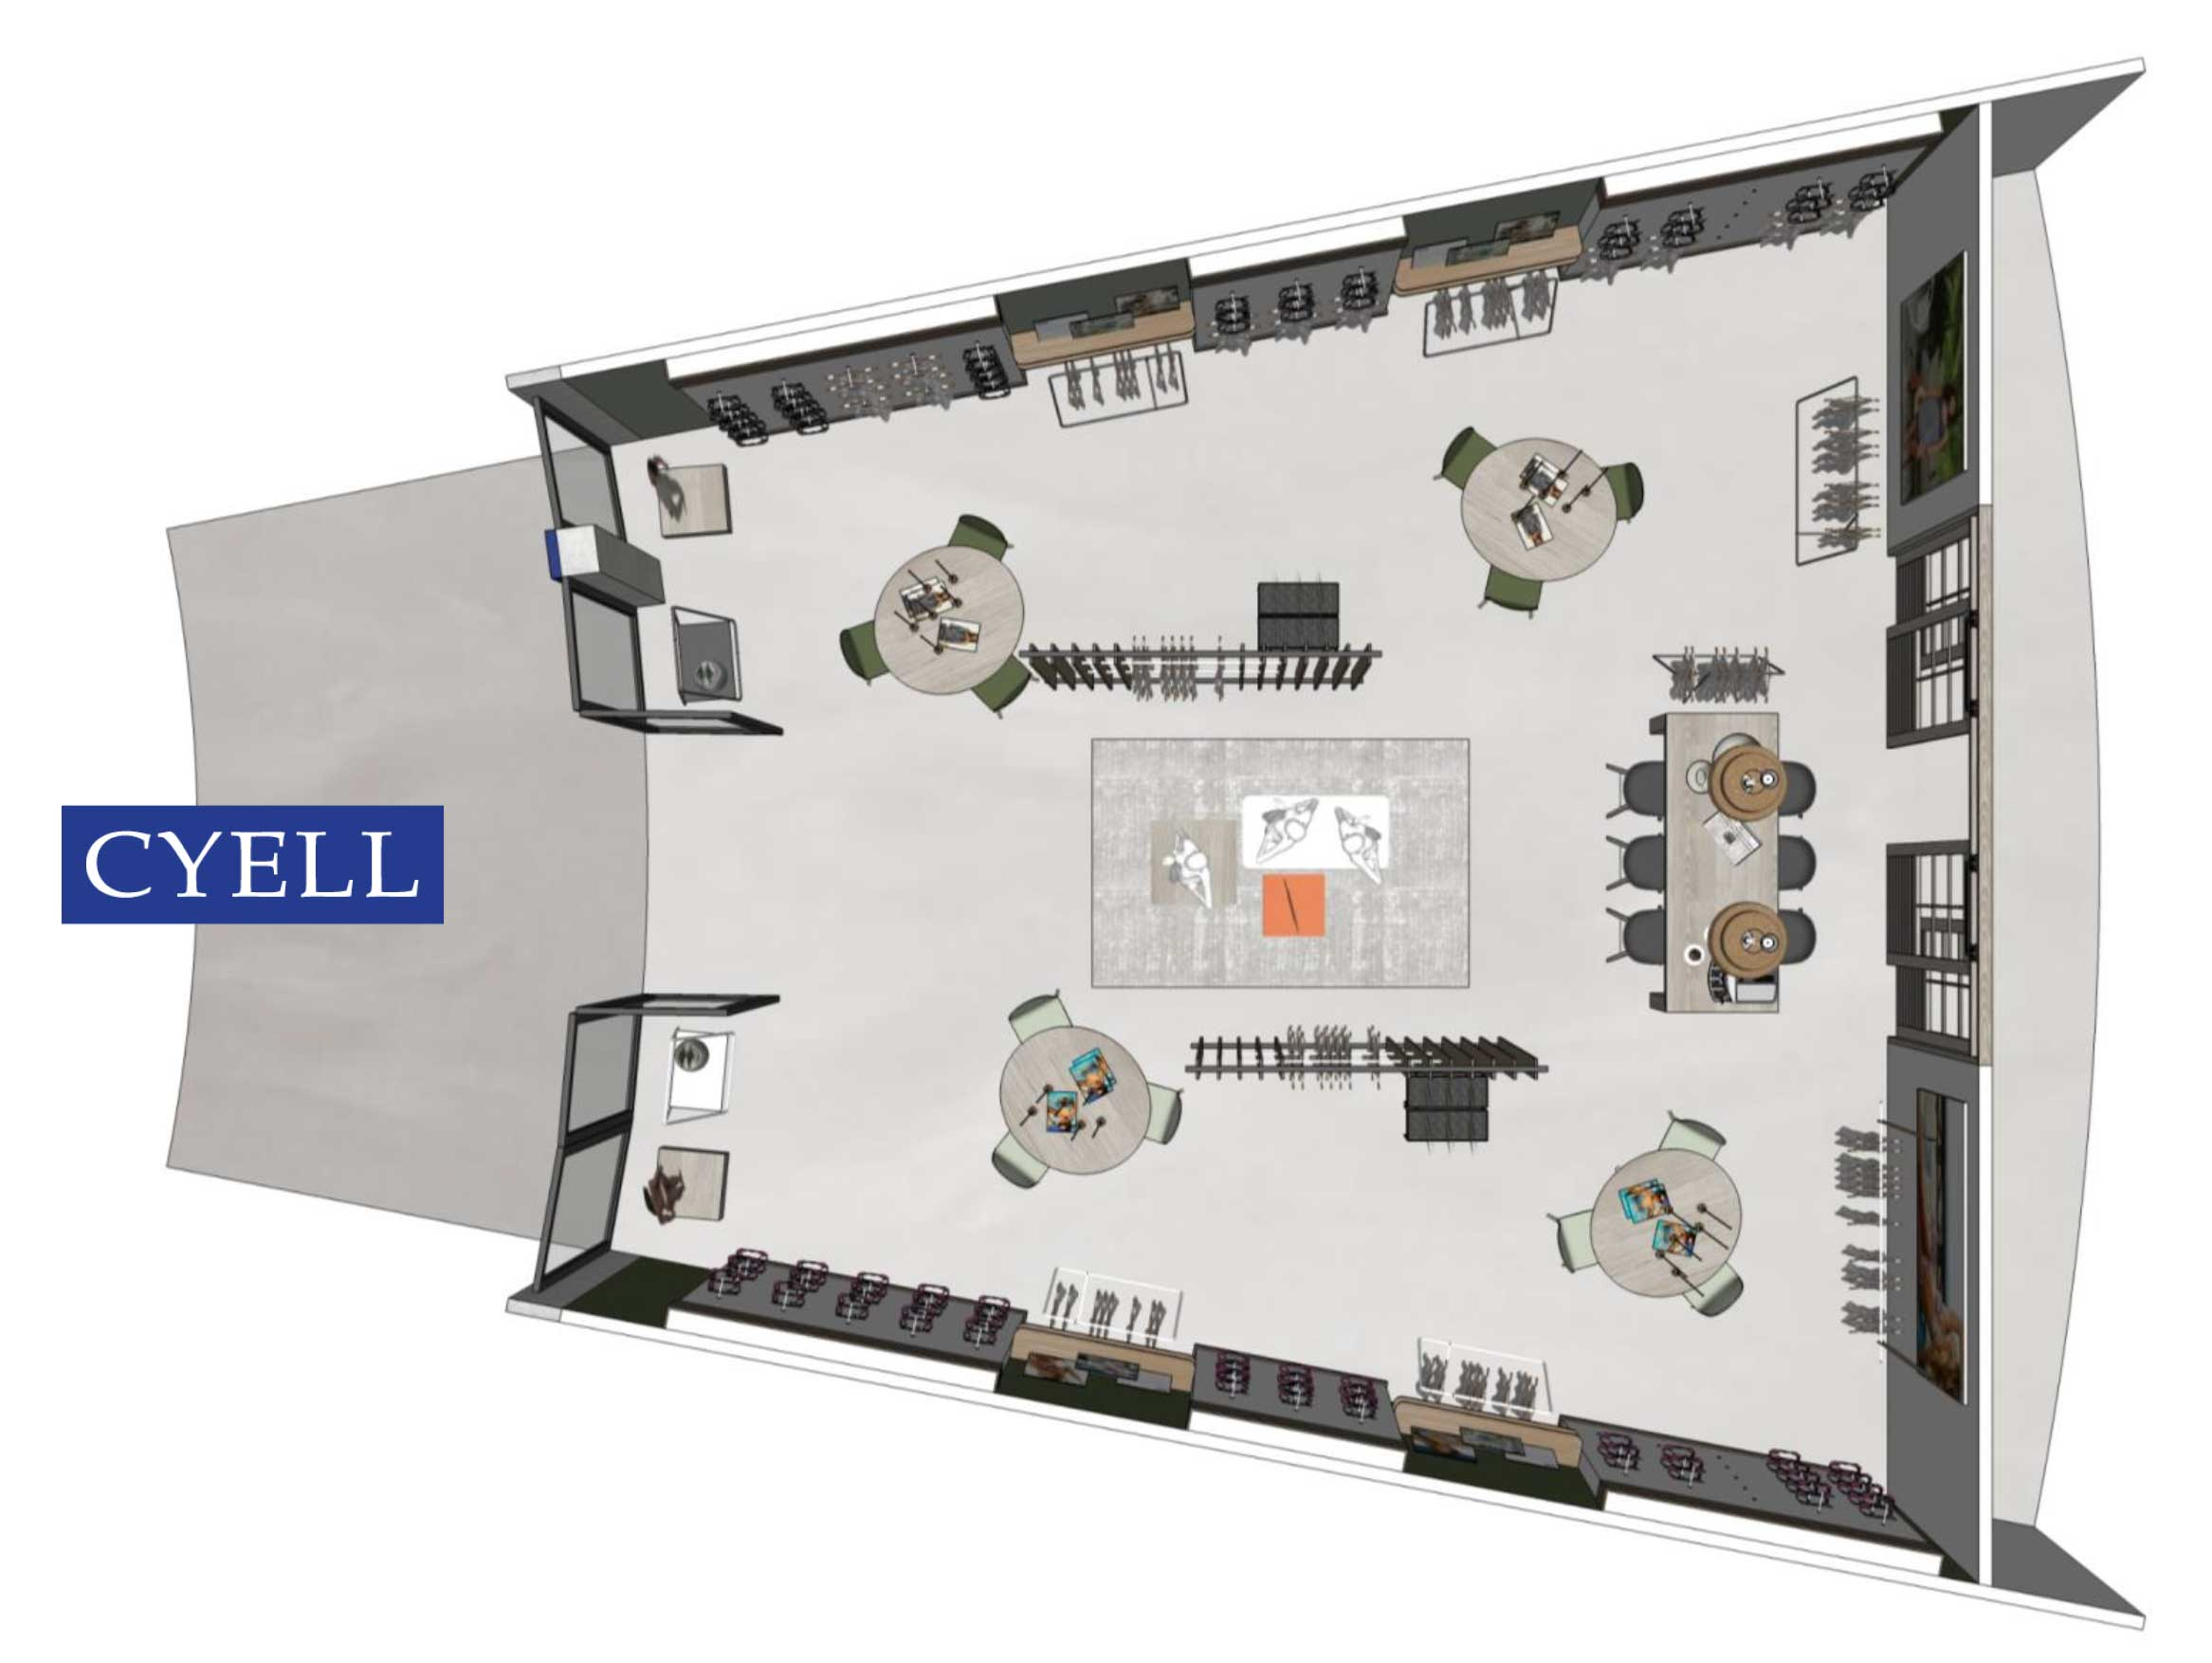 Cyell showroom plattegrond